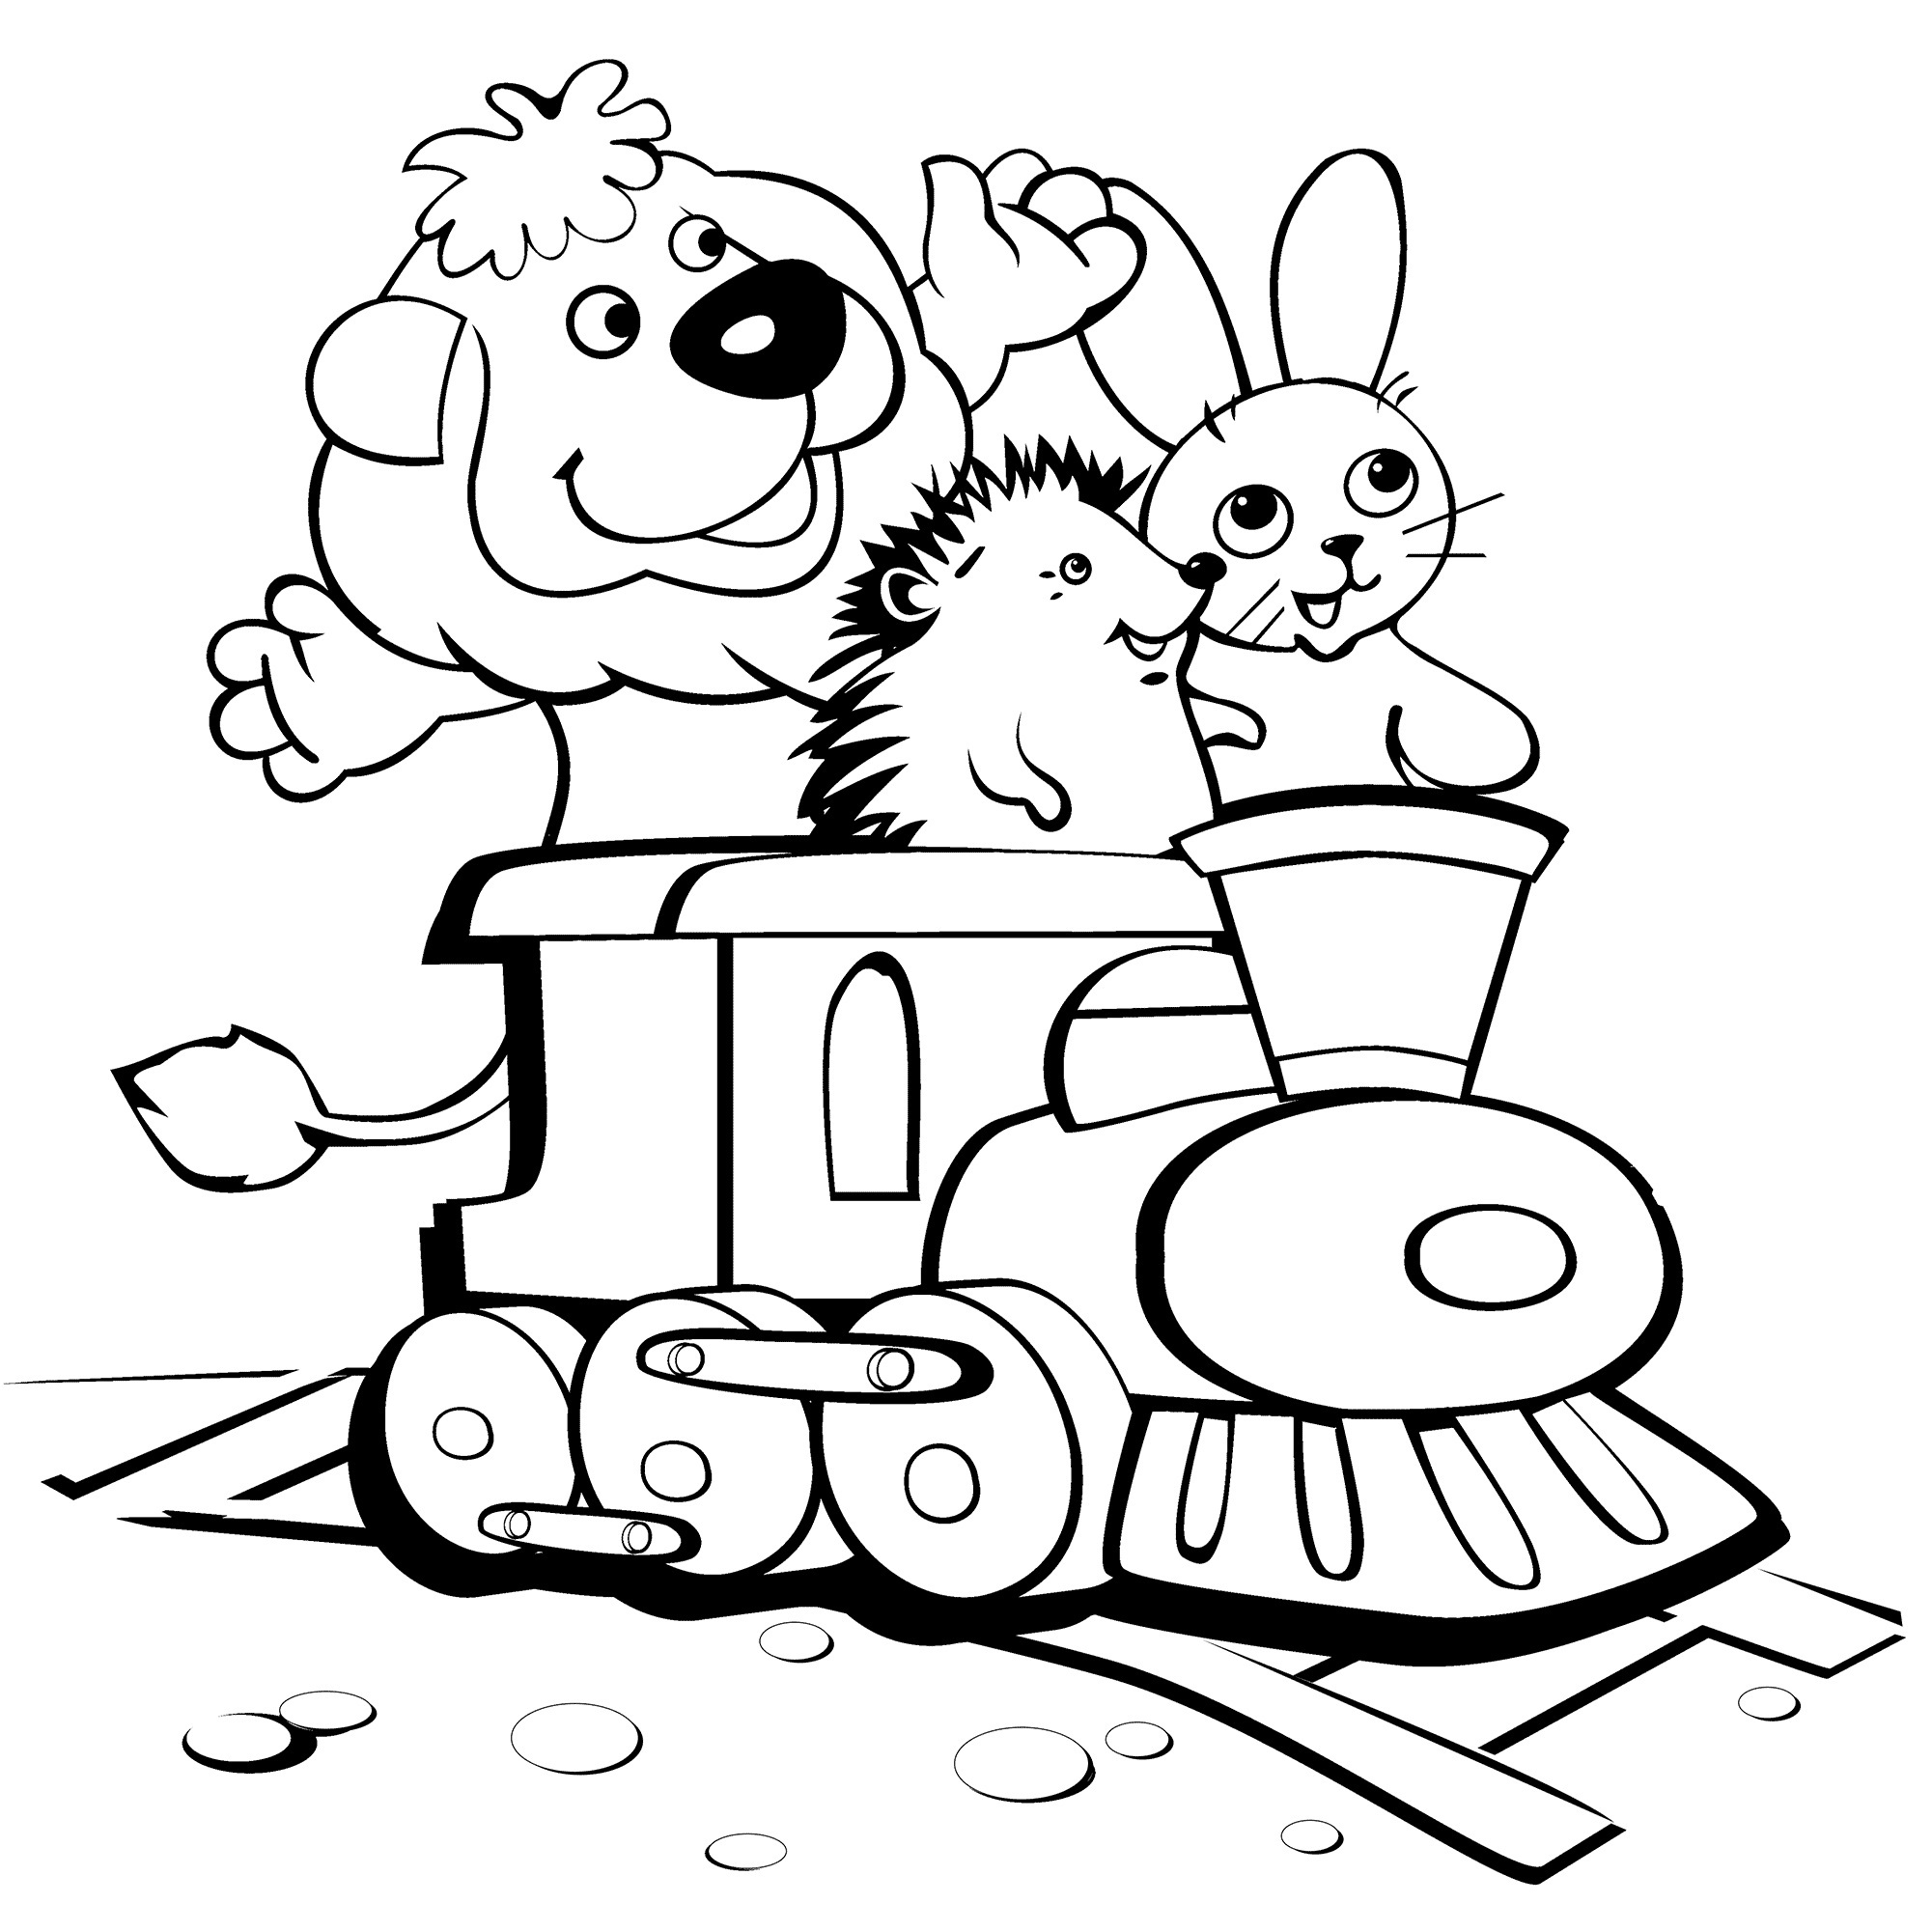 printable funny coloring page - Drawings For Kids To Color